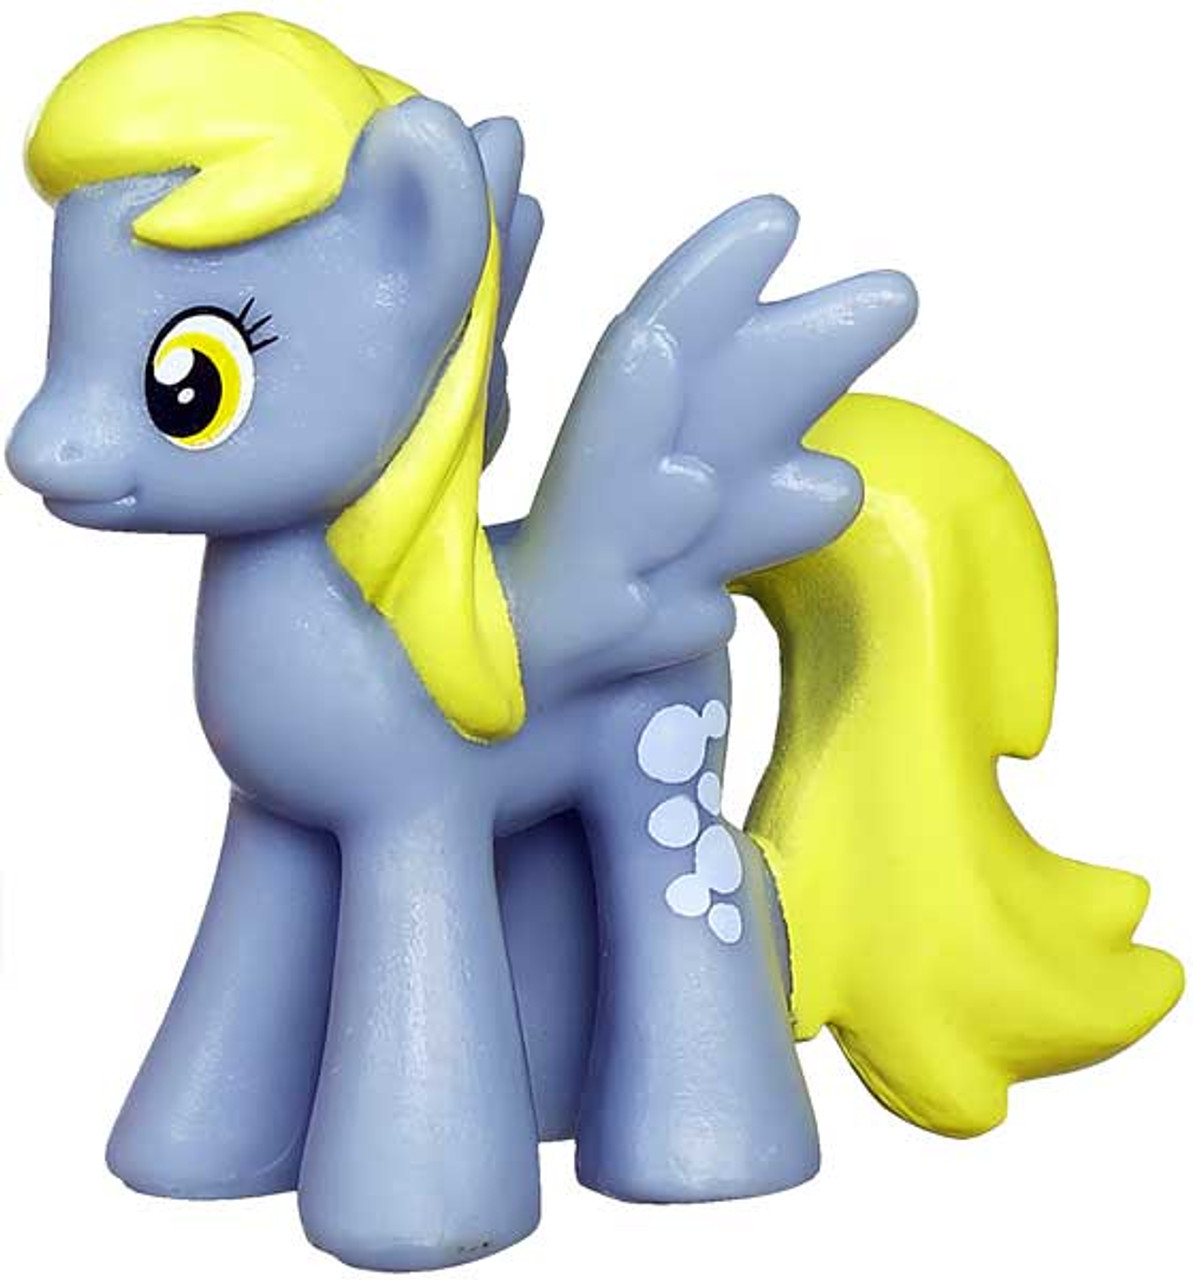 My Little Pony Friendship is Magic 2 Inch Derpy PVC Figure